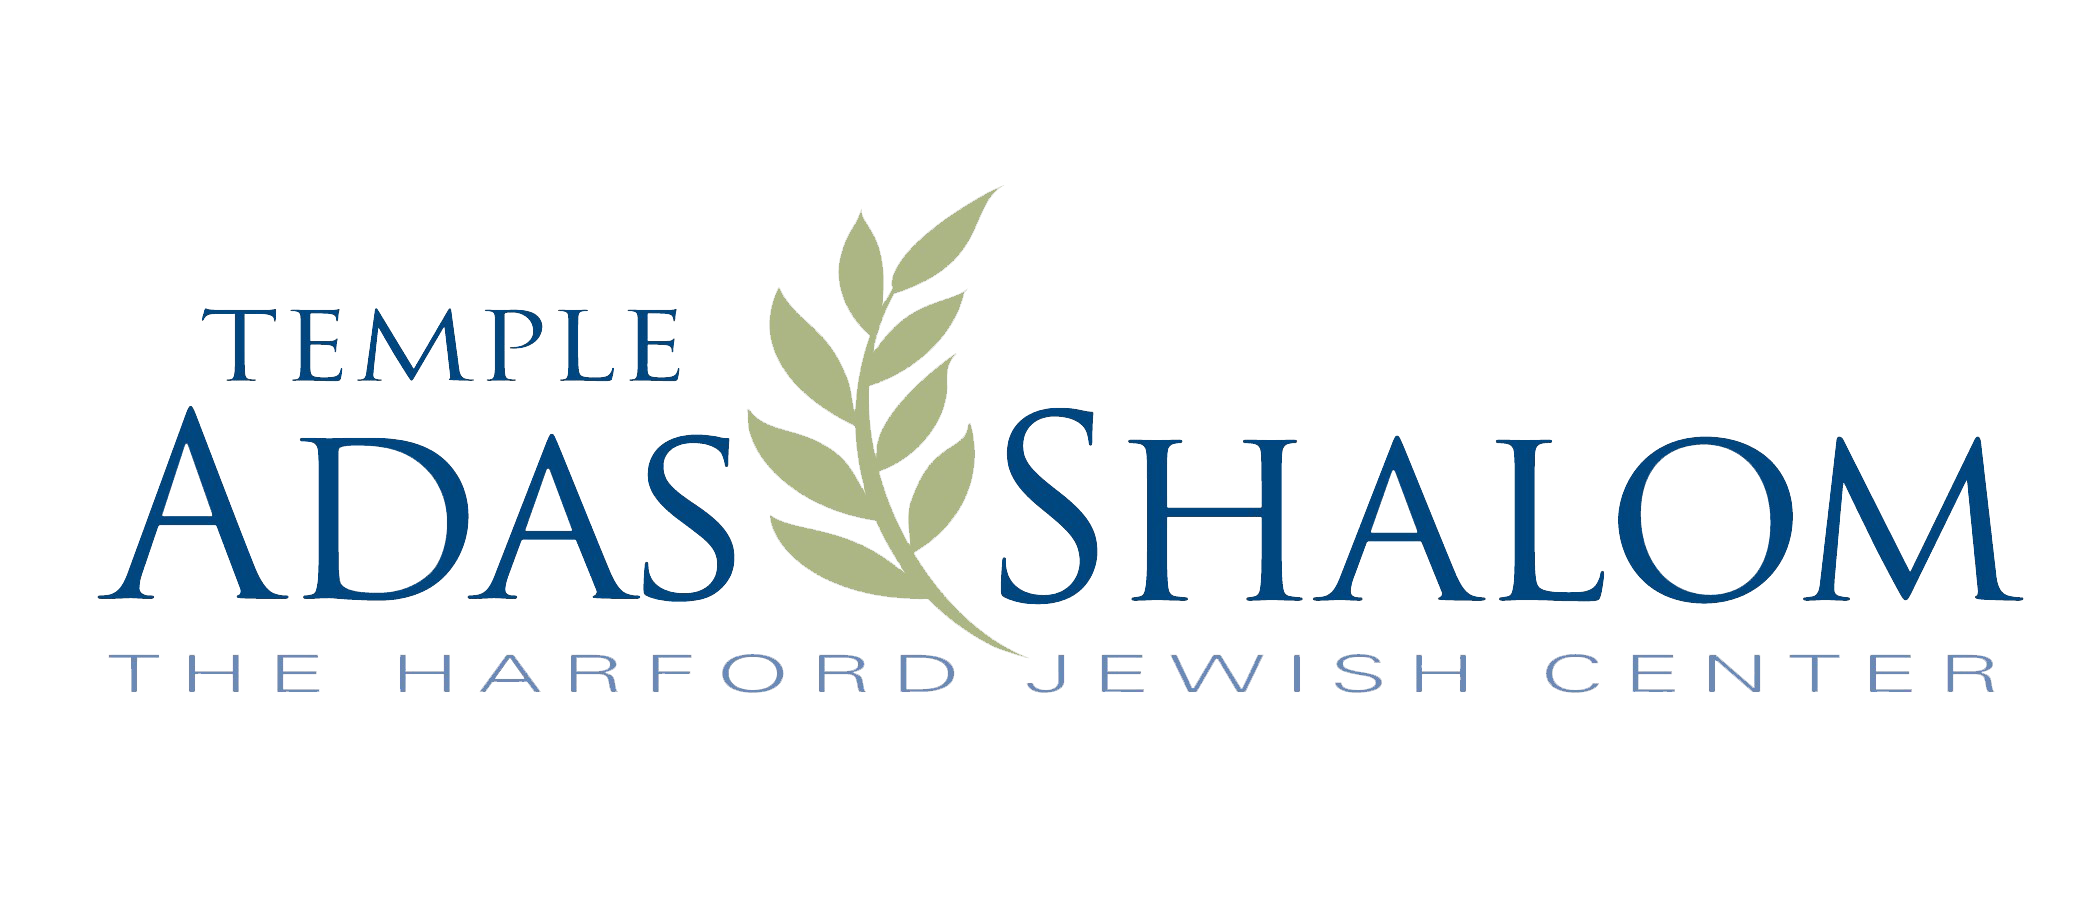 Temple Adas Shalom Donations, Fundraisers, & Events